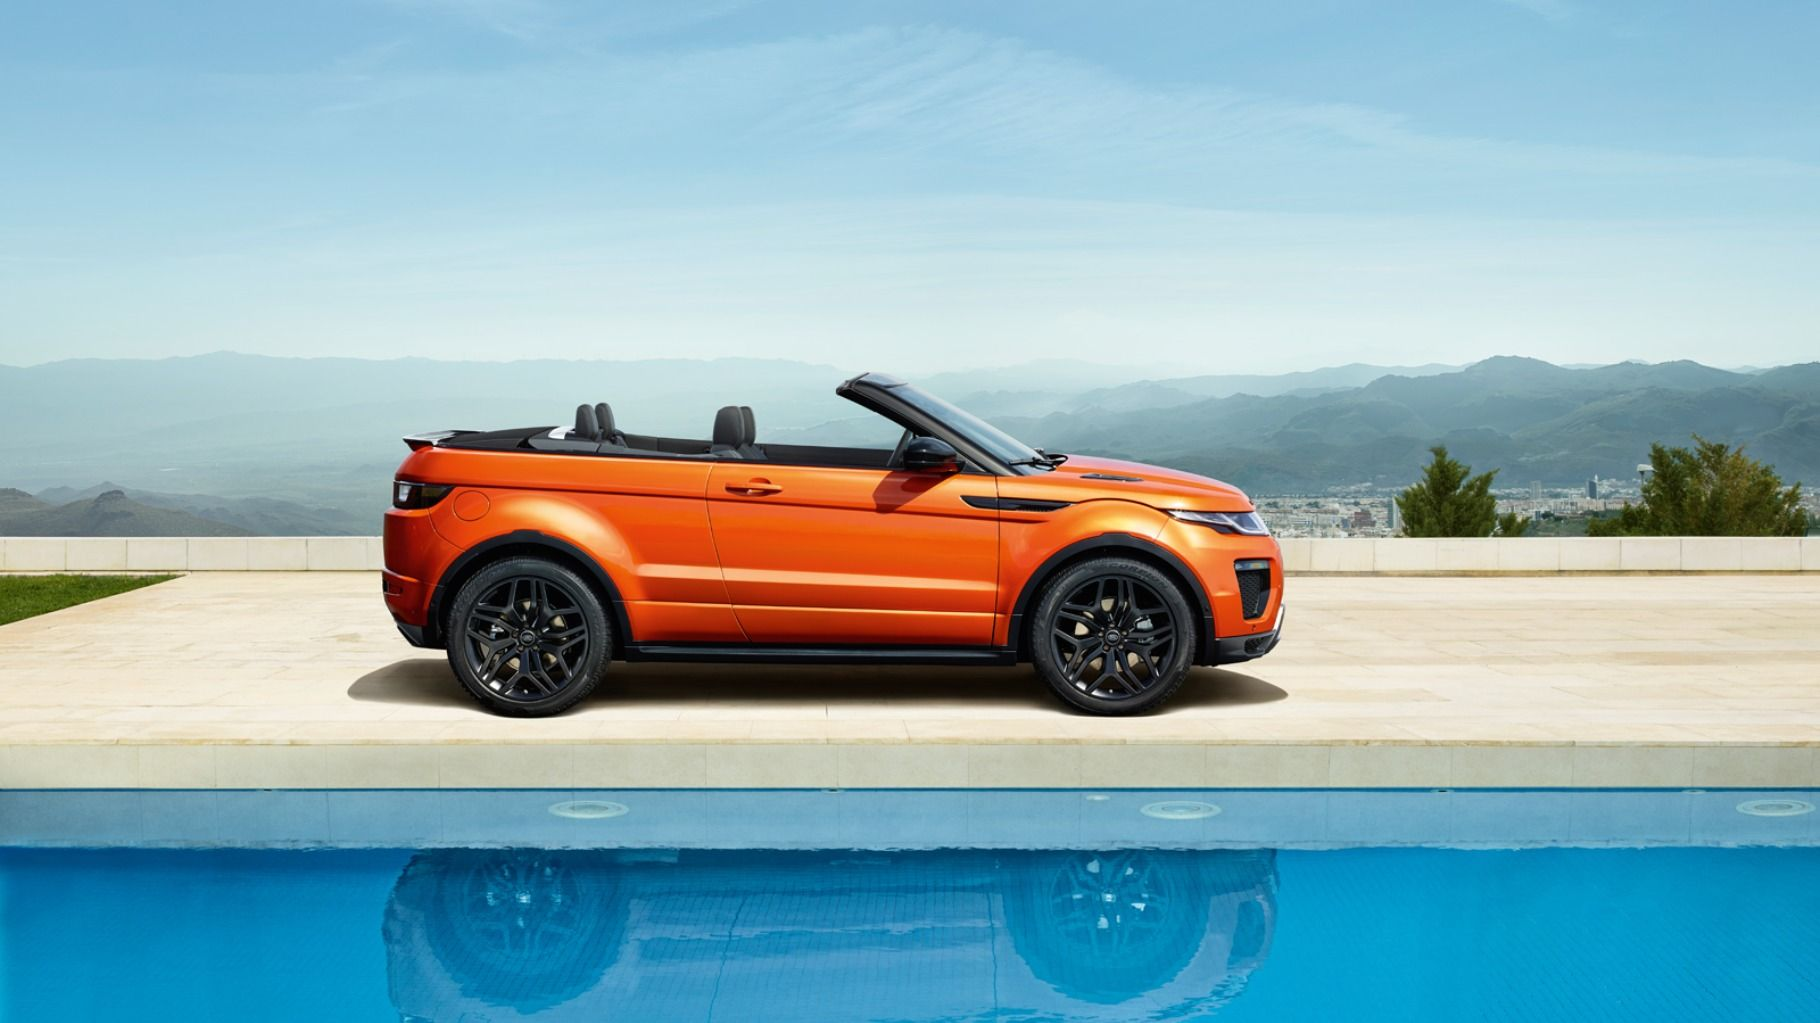 Good idea? New twist on a cross over. #LandRover Range Rover Evoque Convertible http://adventure.com/stories/land-rover-range-rover-evoque-convertible/